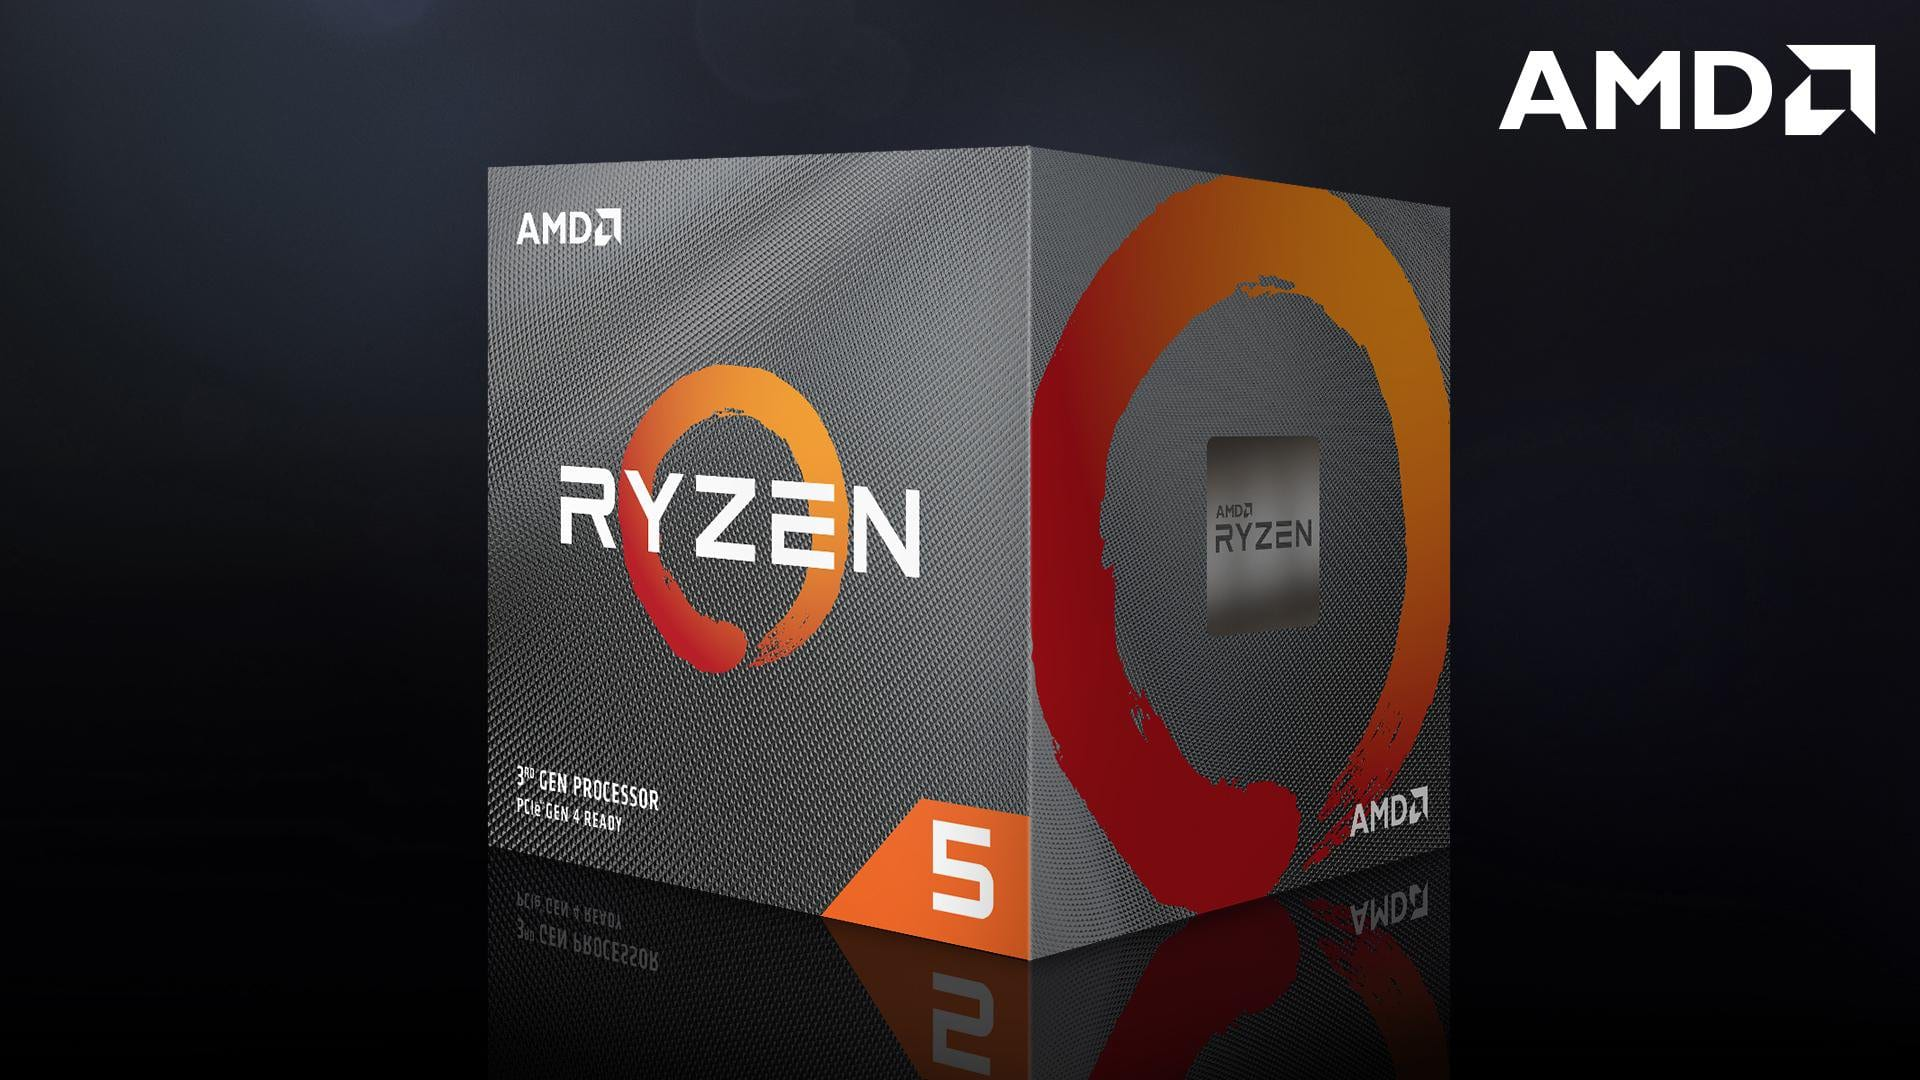 Amd Ryzen 3000 Cpus Might Get Better Boost Clocks As New